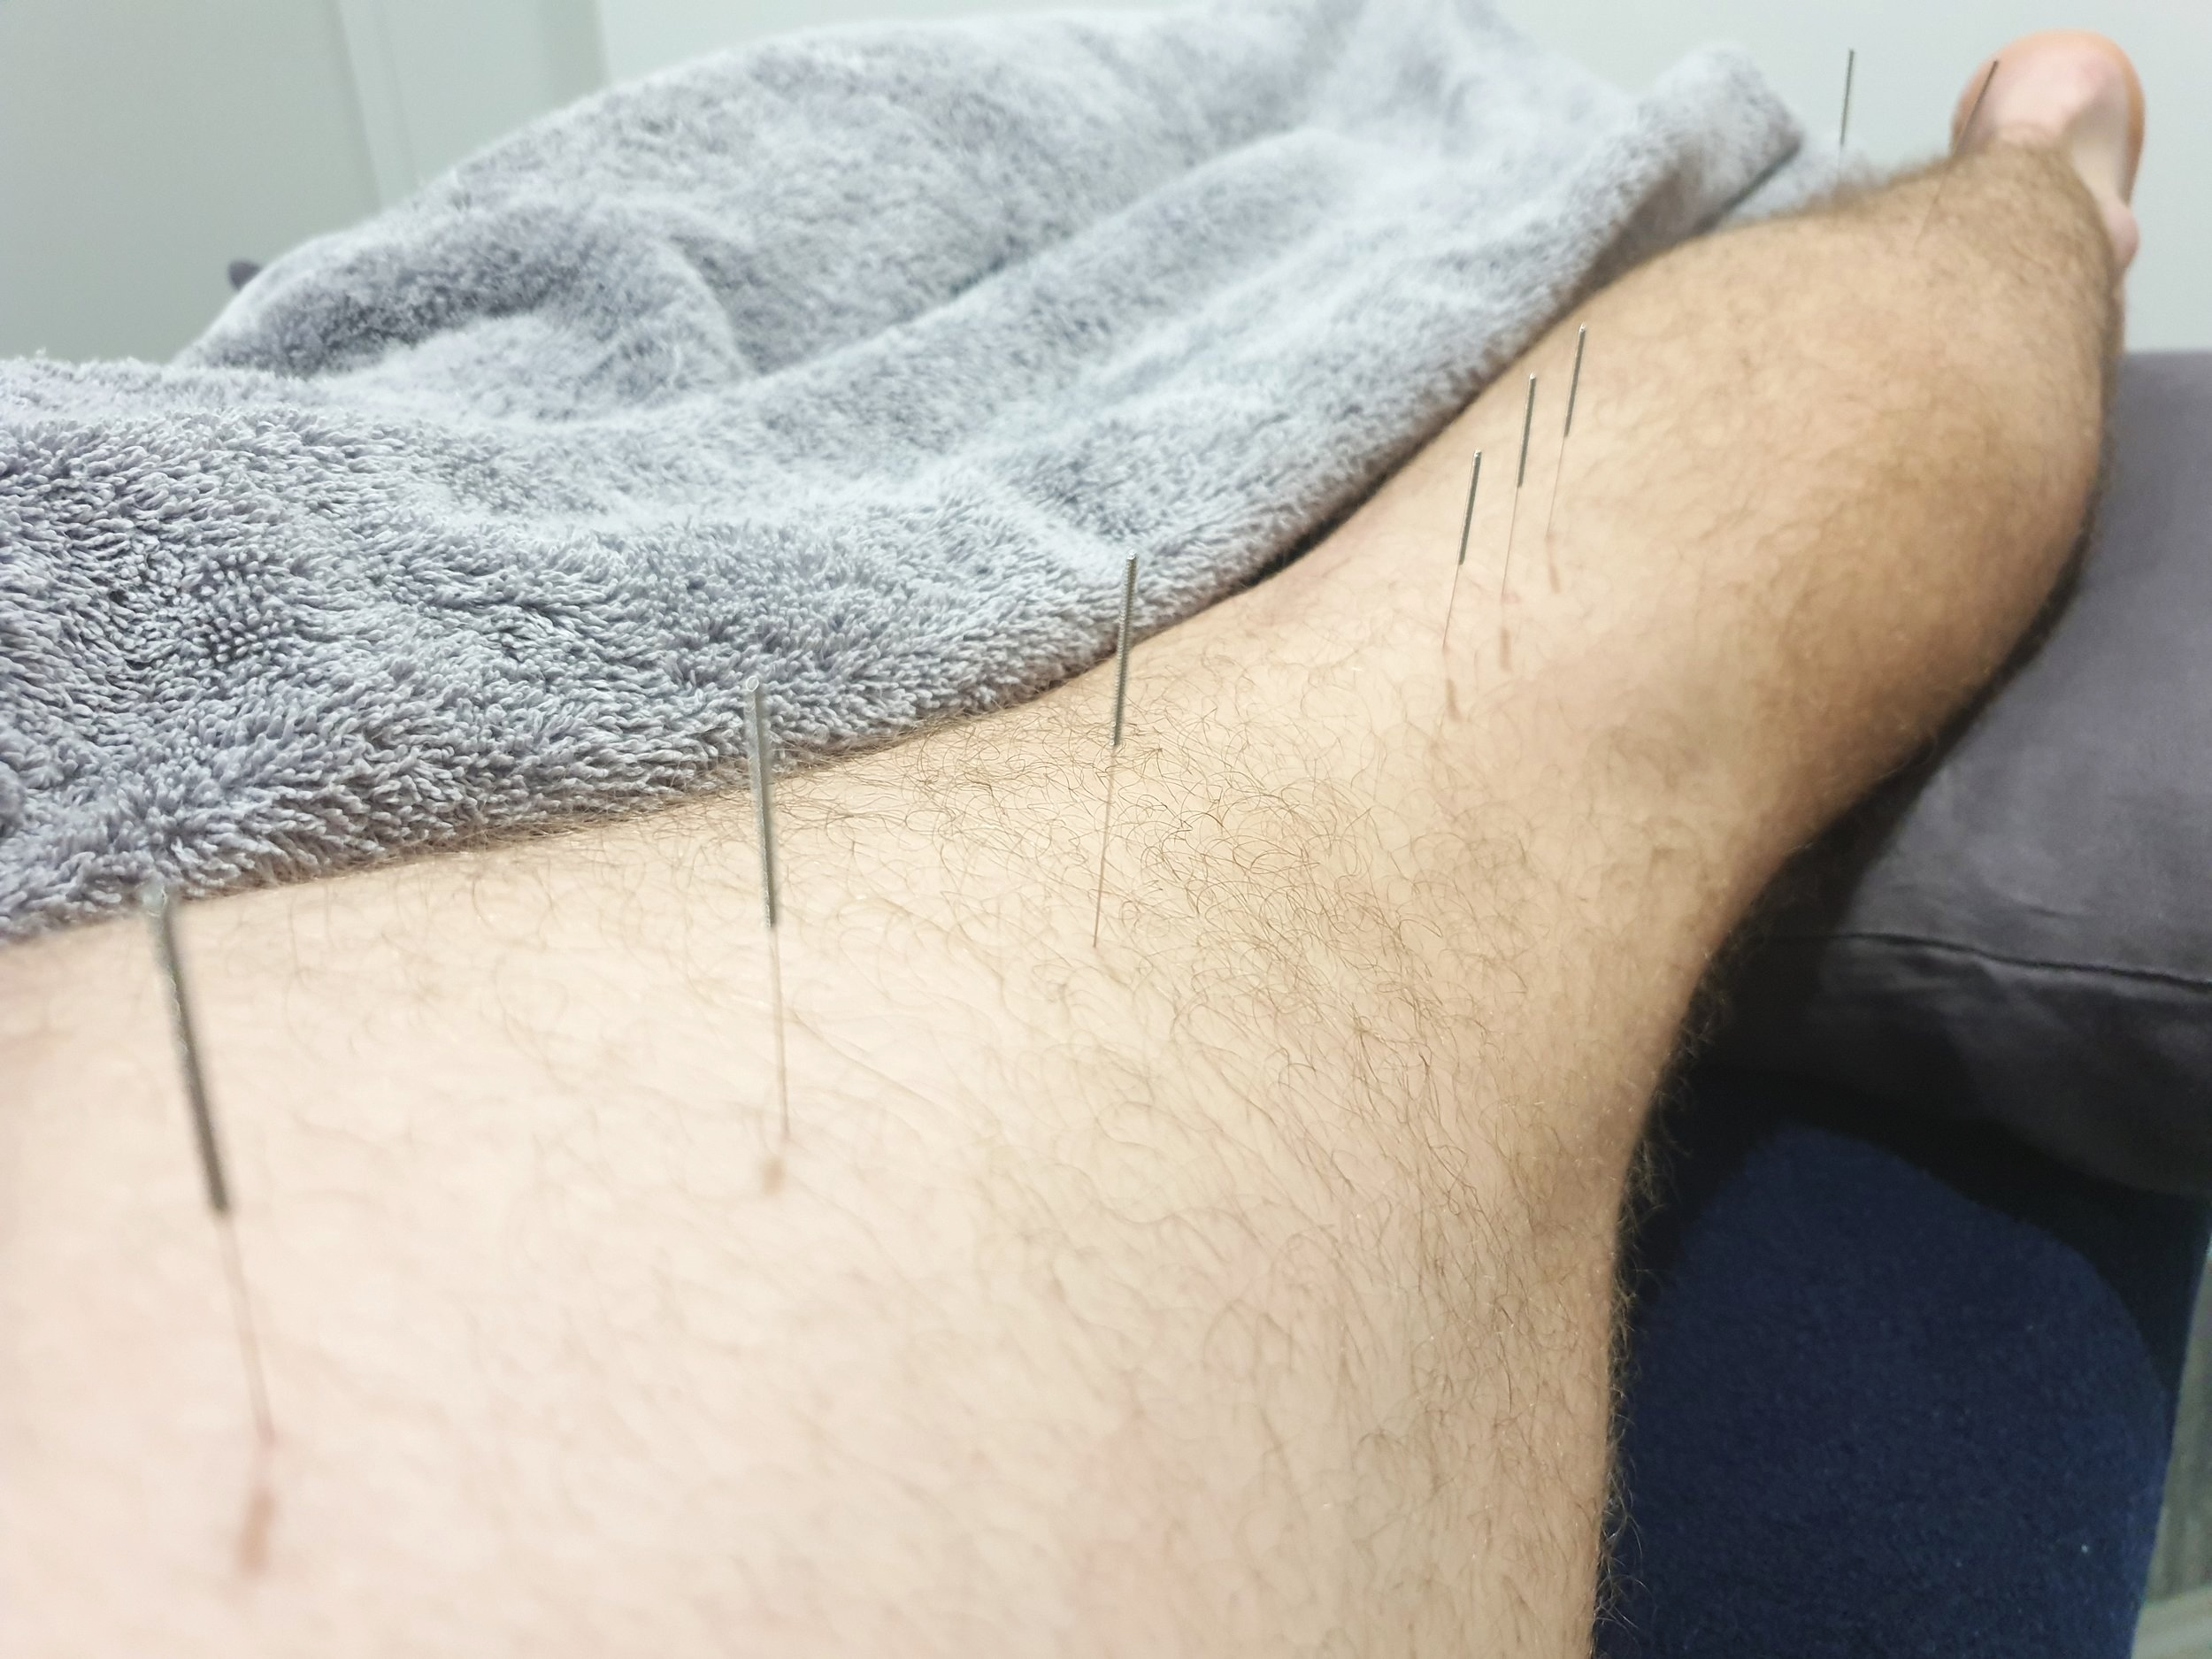 Acupuncture needling for an ACL injury at our Gold Coast acupuncture clinic.